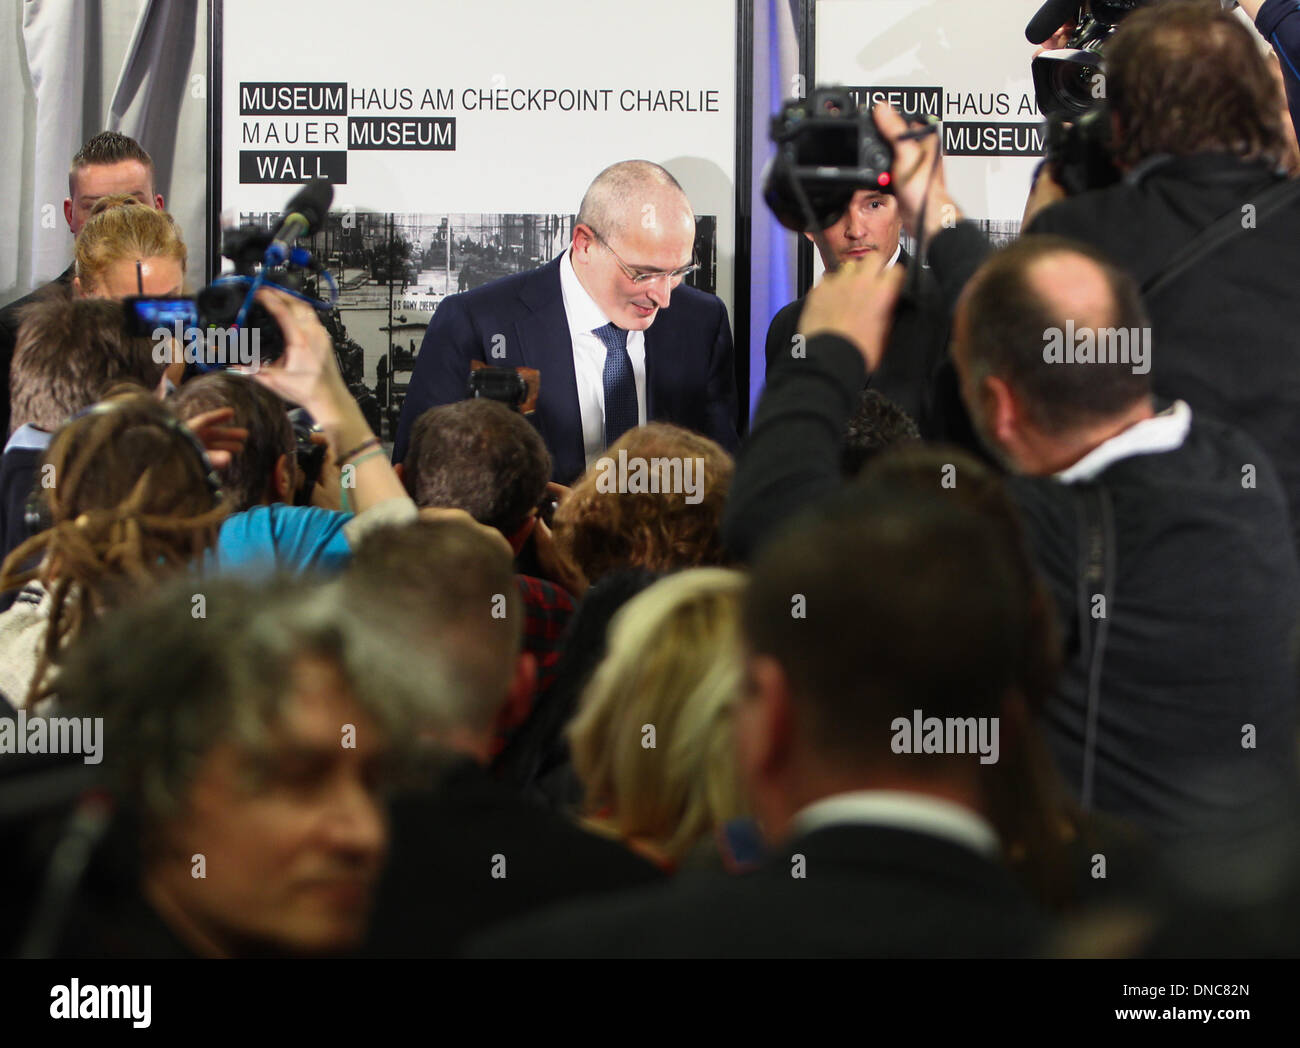 Berlin, Germany. 22nd Dec, 2013. Mikhail Khodorkovsky (C) leaves after a press conference in Berlin, Germany, on Dec. 22, 2013. Mikhail Khodorkovsky, a former oil tycoon and one of Russia's most famous prisoners, said here on Sunday that he will not engage in Russian politics or fund the country's political opposition. Credit:  Zhang Fan/Xinhua/Alamy Live News - Stock Image